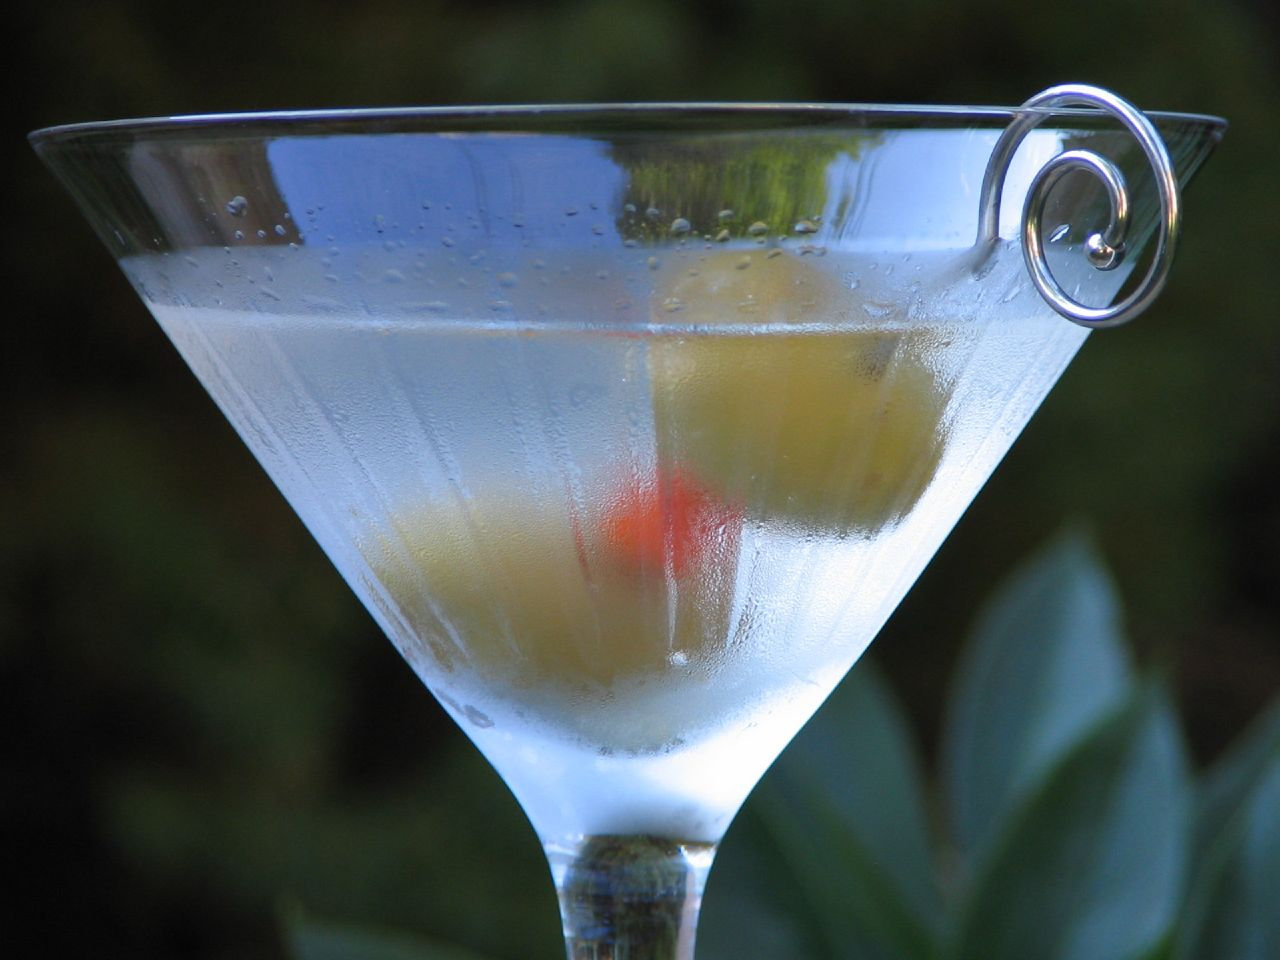 File:Classic martini by Ken30684.jpg - Wikipedia, the free ...